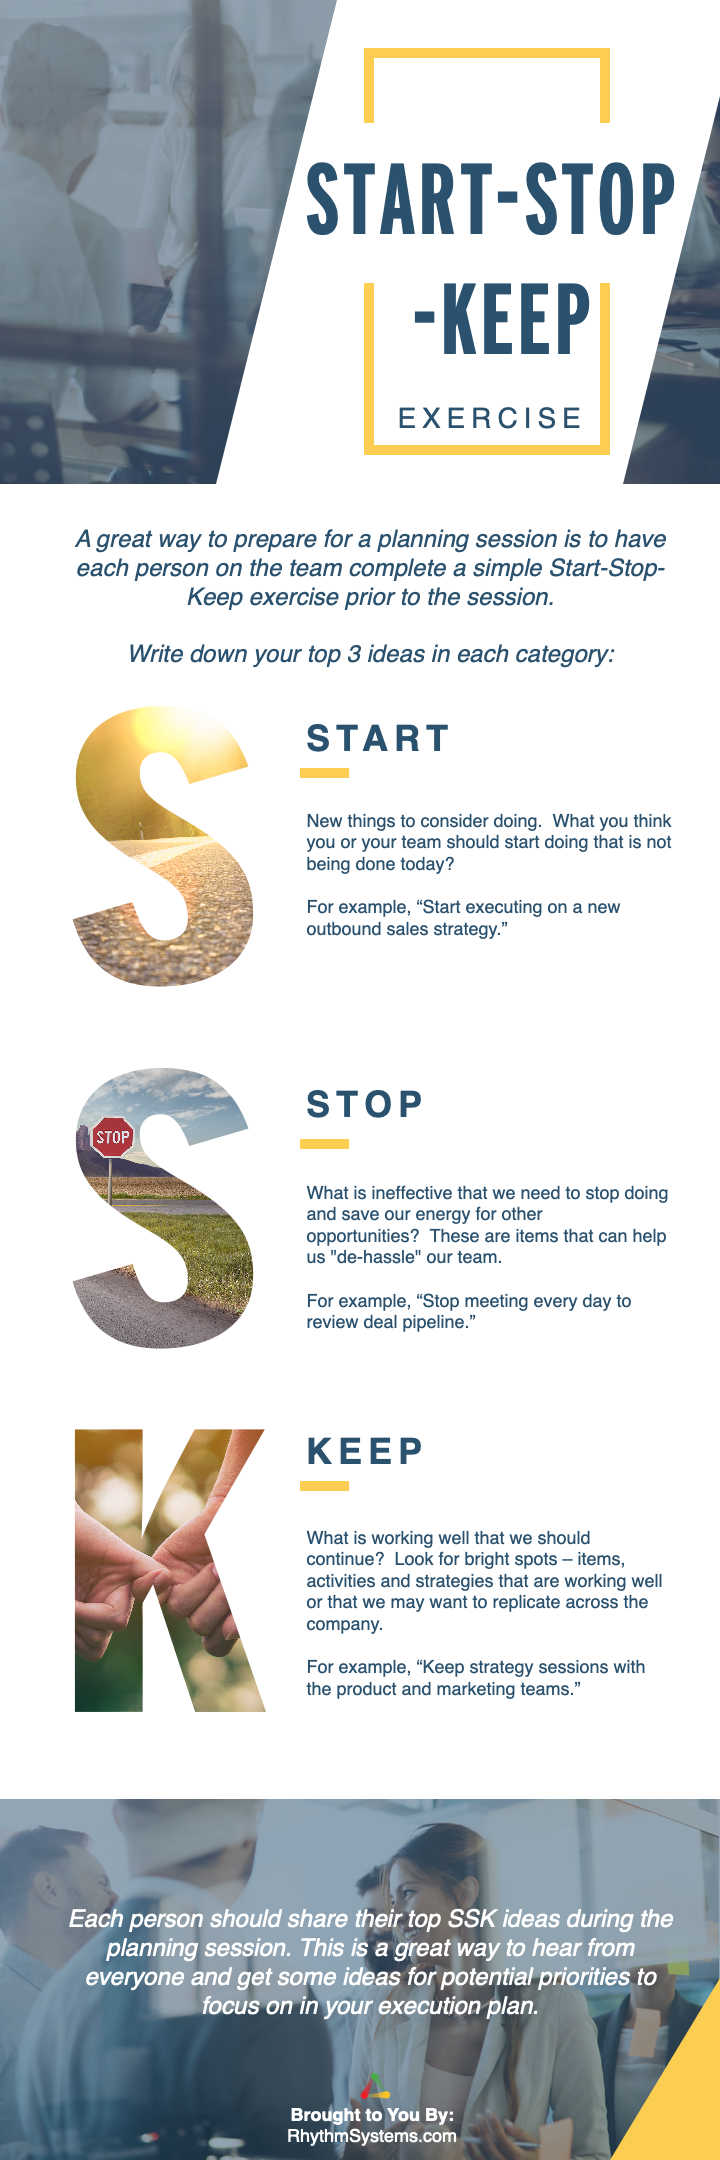 Start-Stop-Keep Graphic